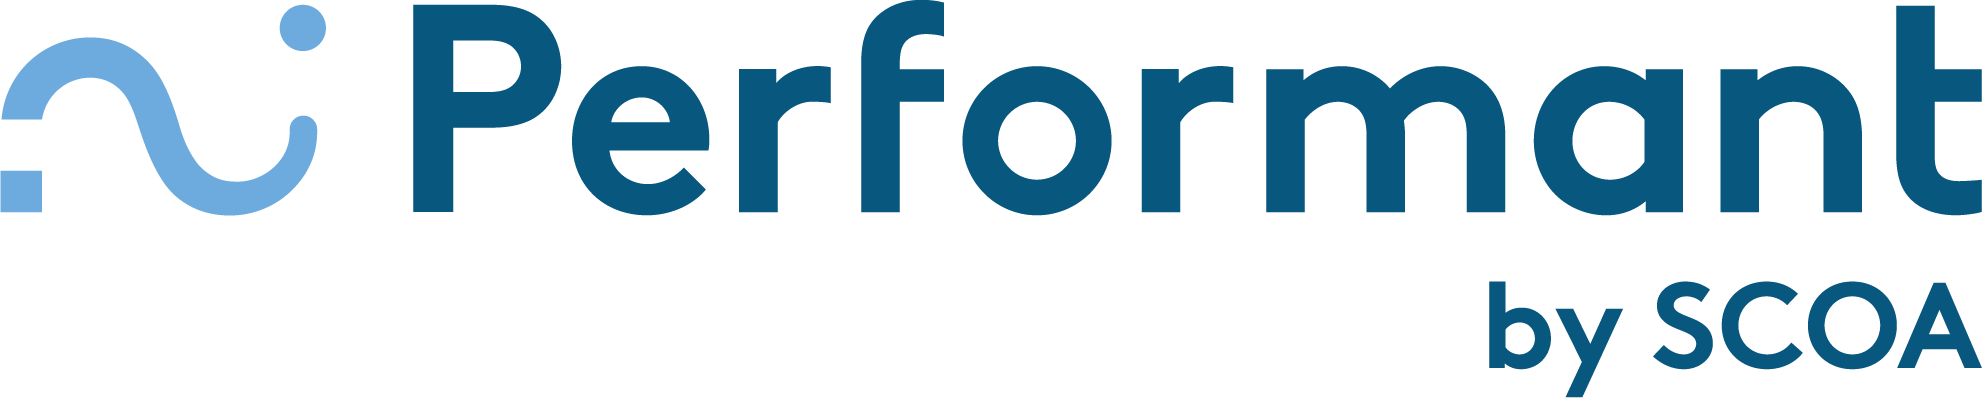 cropped-PERFORMATLOGO.png